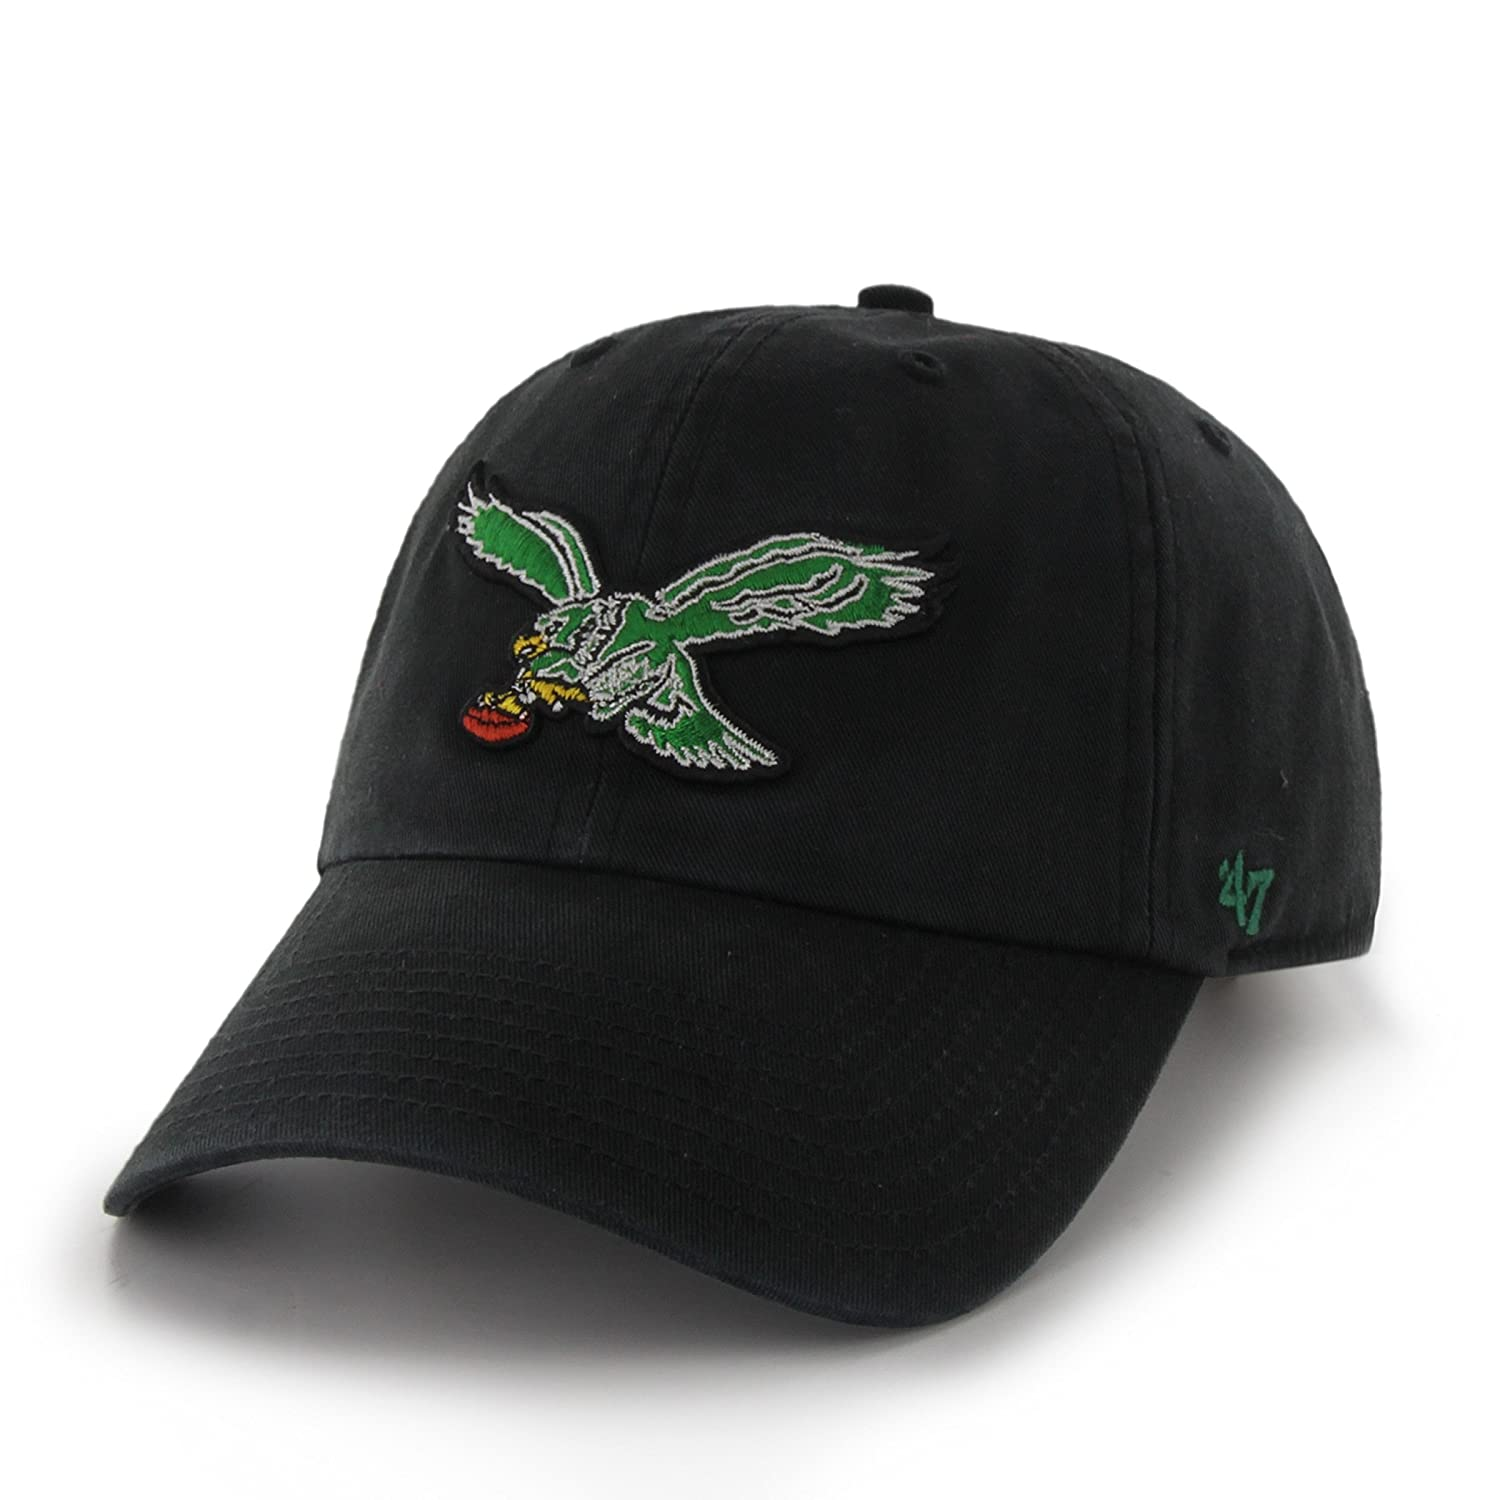 NFL Philadelphia Eagles Clean Up Adjustable Hat One Size Black